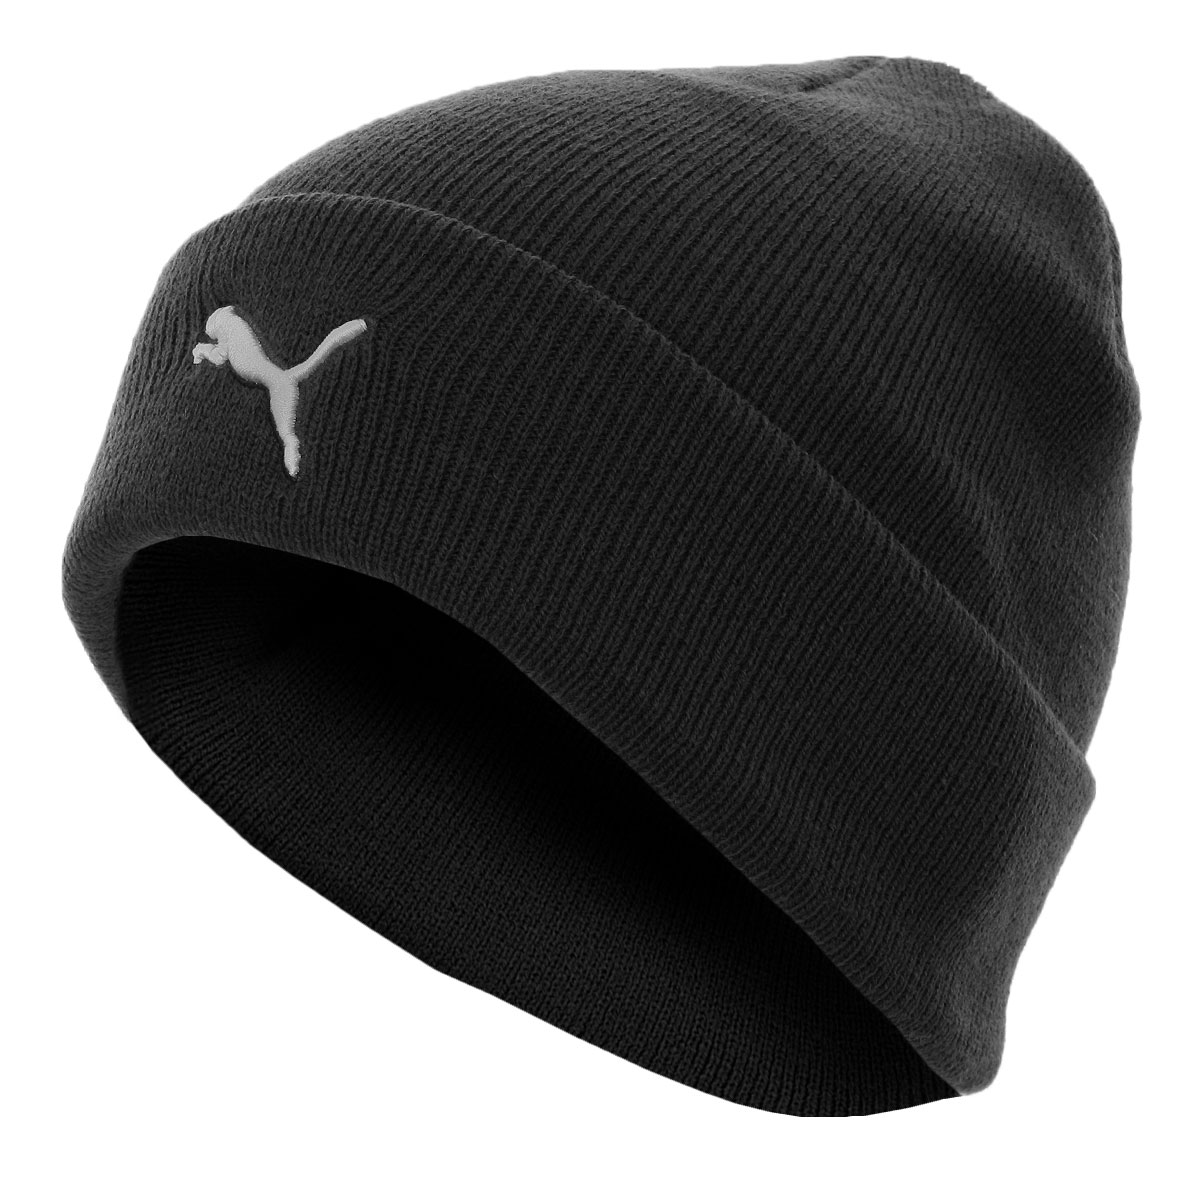 9c1c610bf3 Details about Puma Golf Mens Control Beanie Hat - Puma Black - One Size